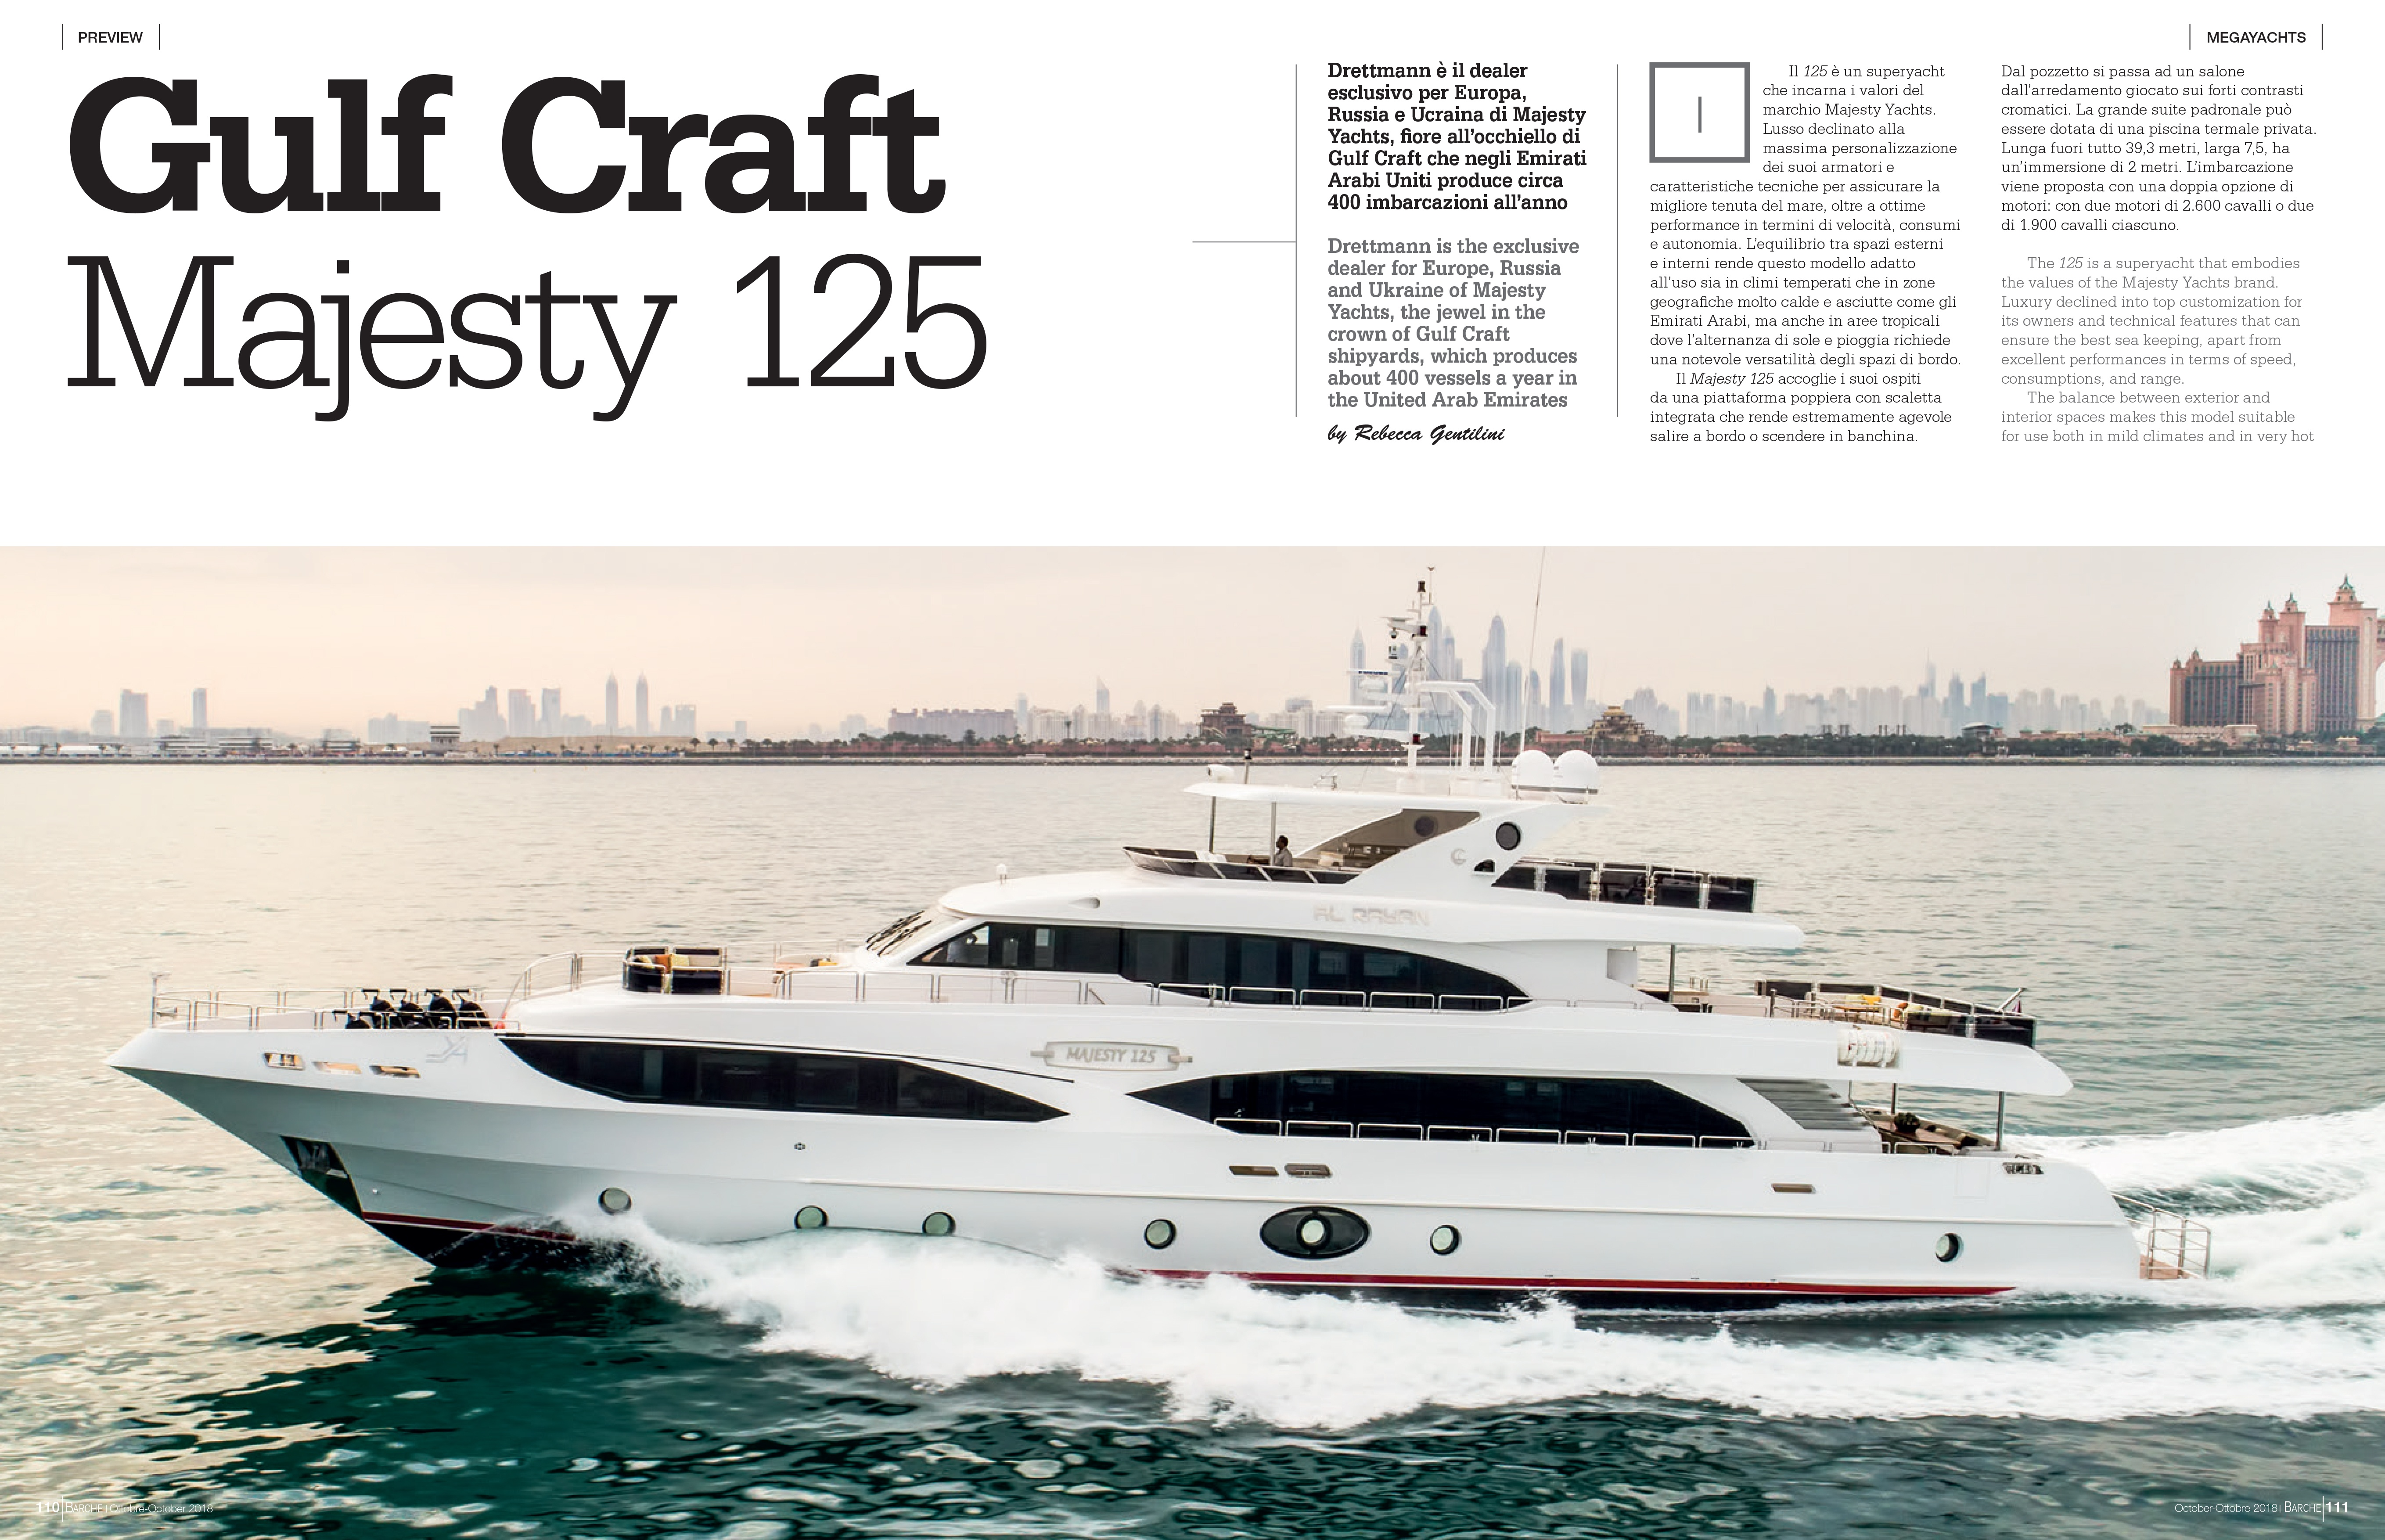 BARCHE---October-2018-issue,-Majesty-125,-Gulf-Craft-2